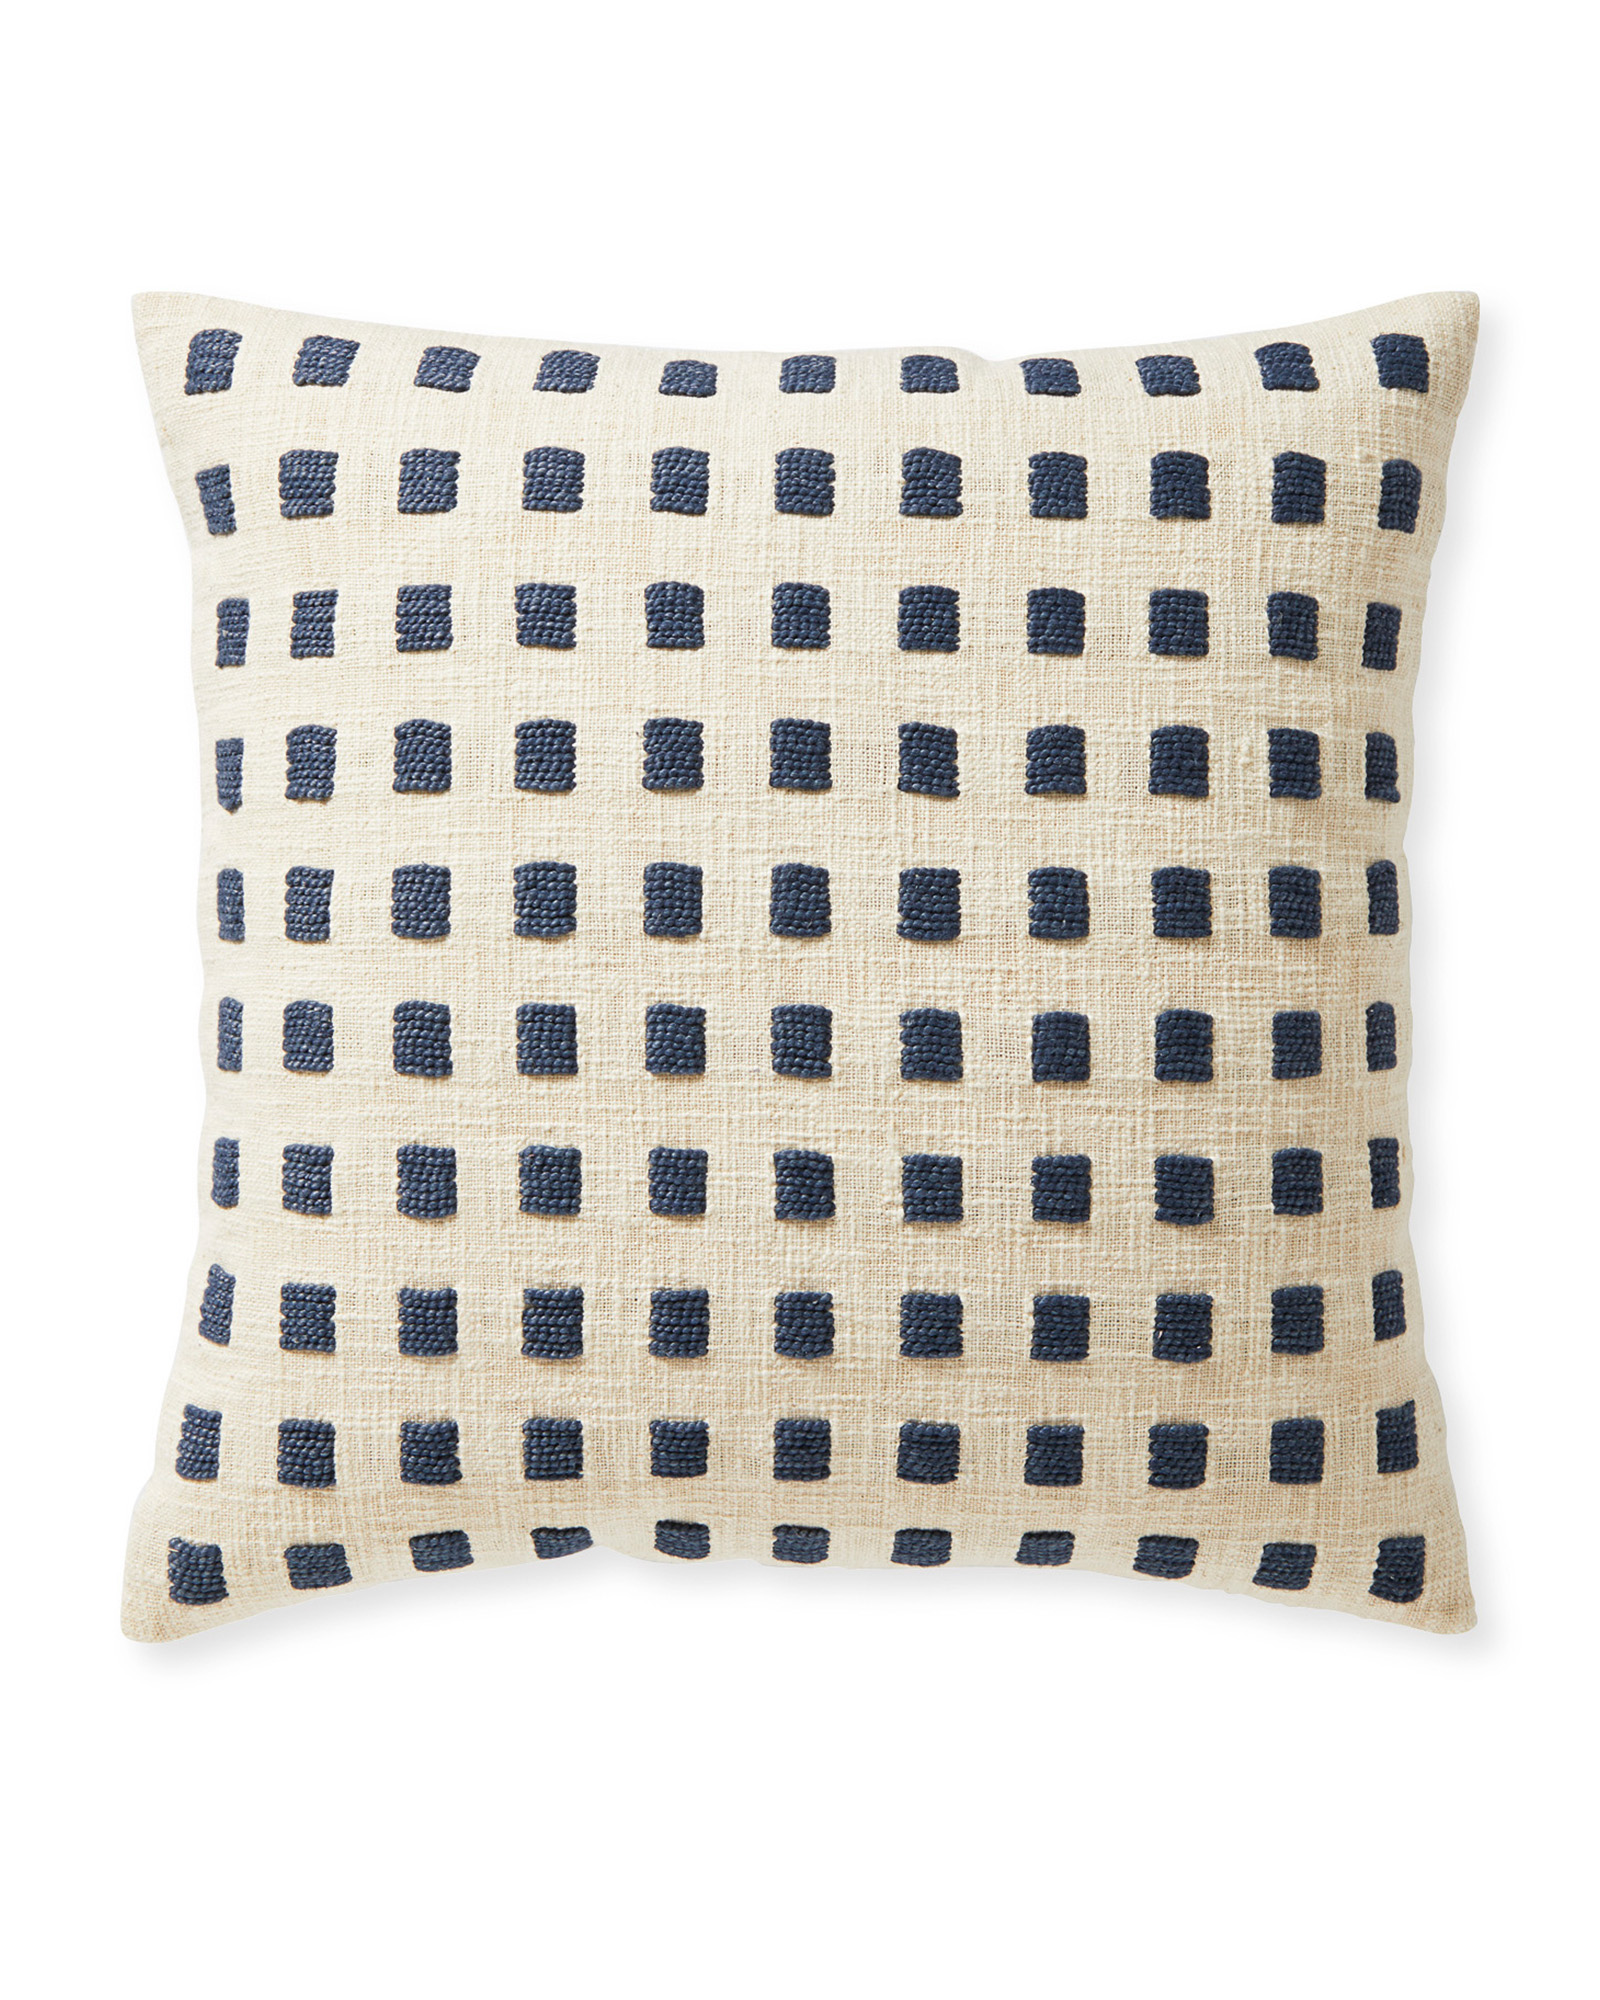 Pebble Cove Pillow Cover, Ivory/Navy